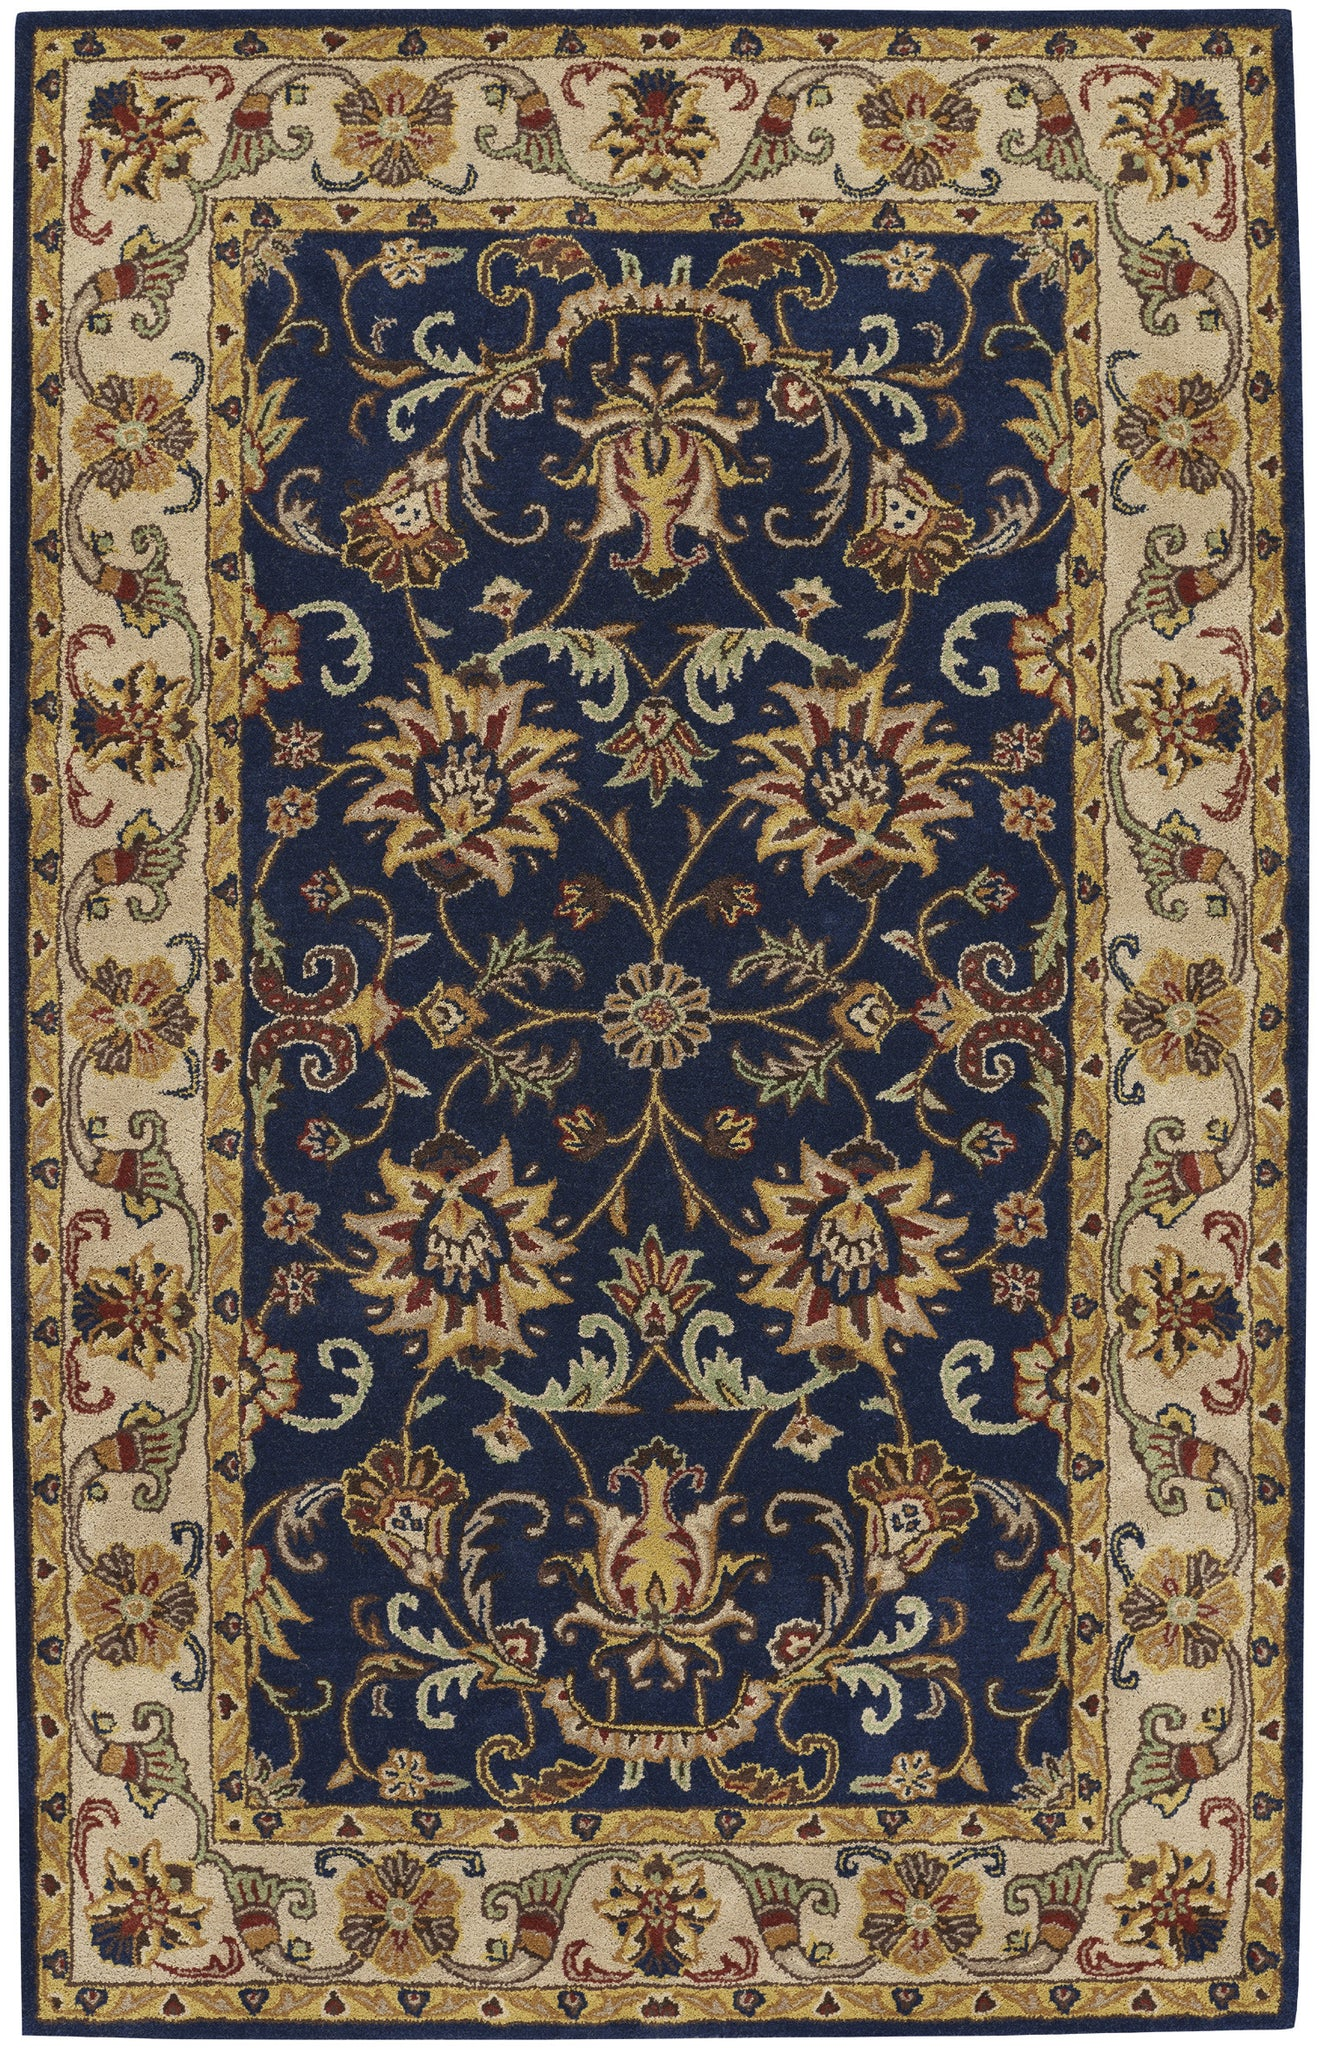 Capel Guilded 9205 Dark Blue 475 Area Rug main image